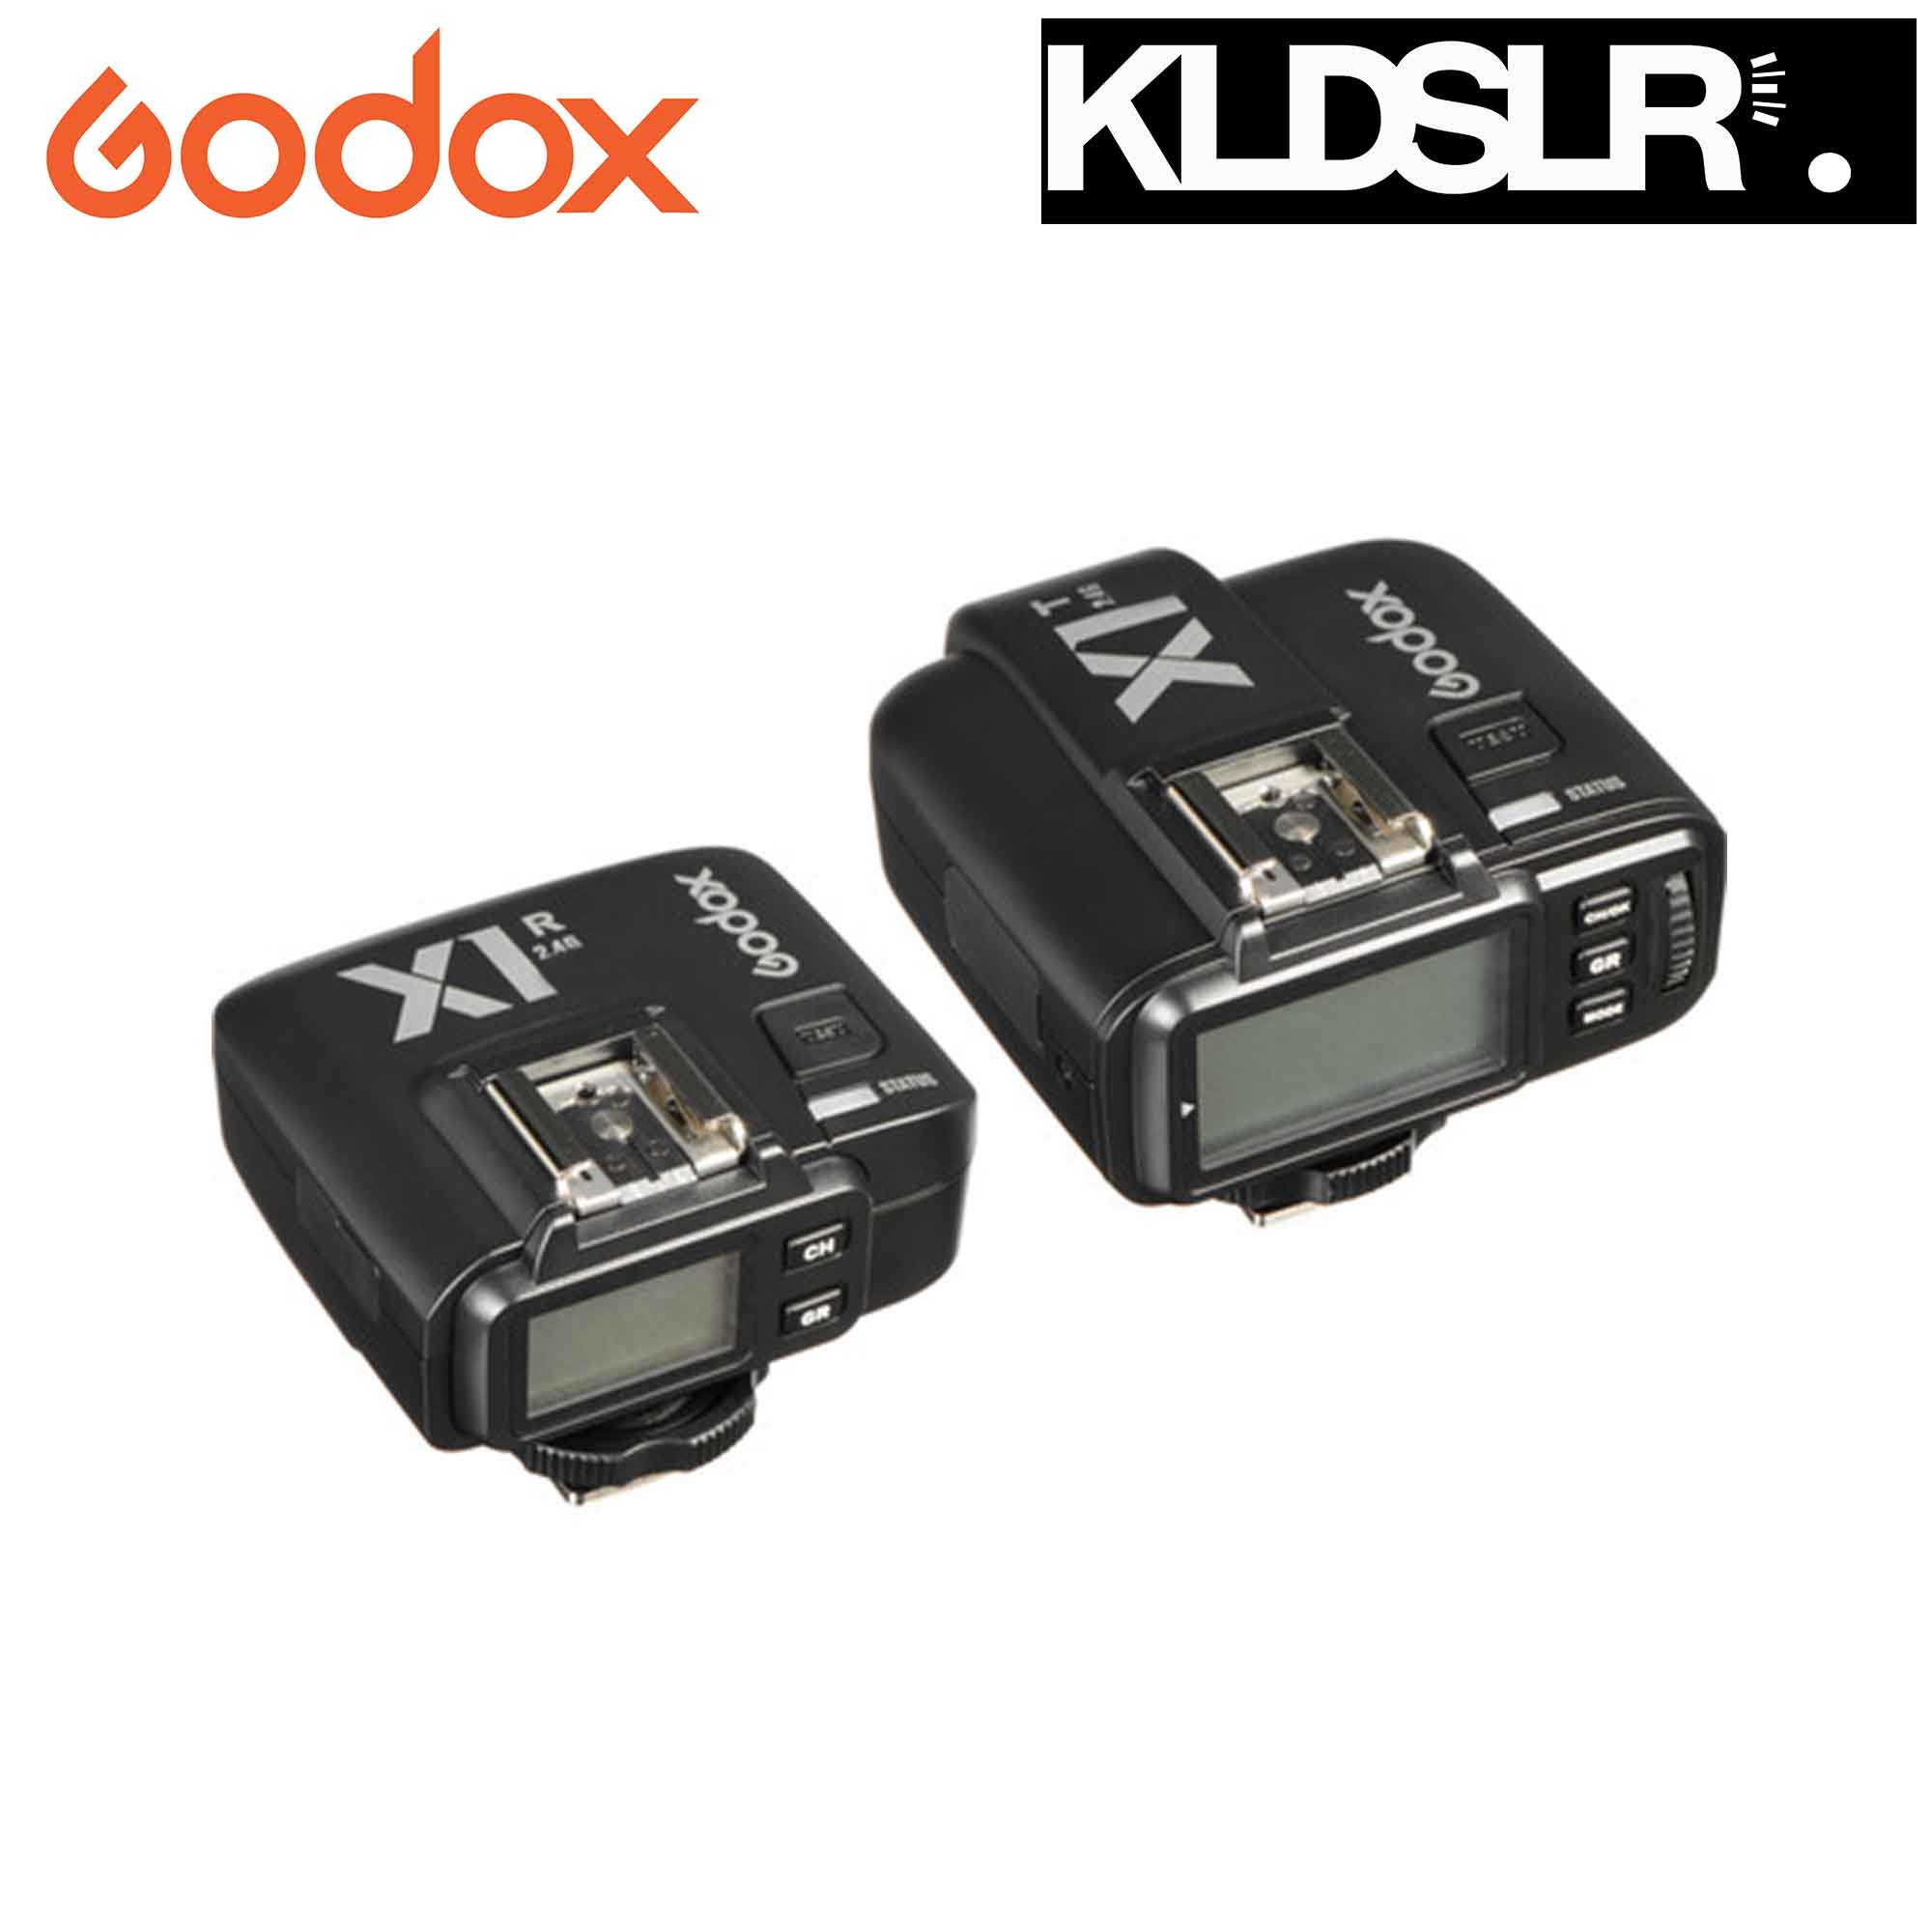 Godox X1s Ttl Wireless Flash Trigger Set For Sony Cameras 1 Tt685s Untuk Receiver Transmitter